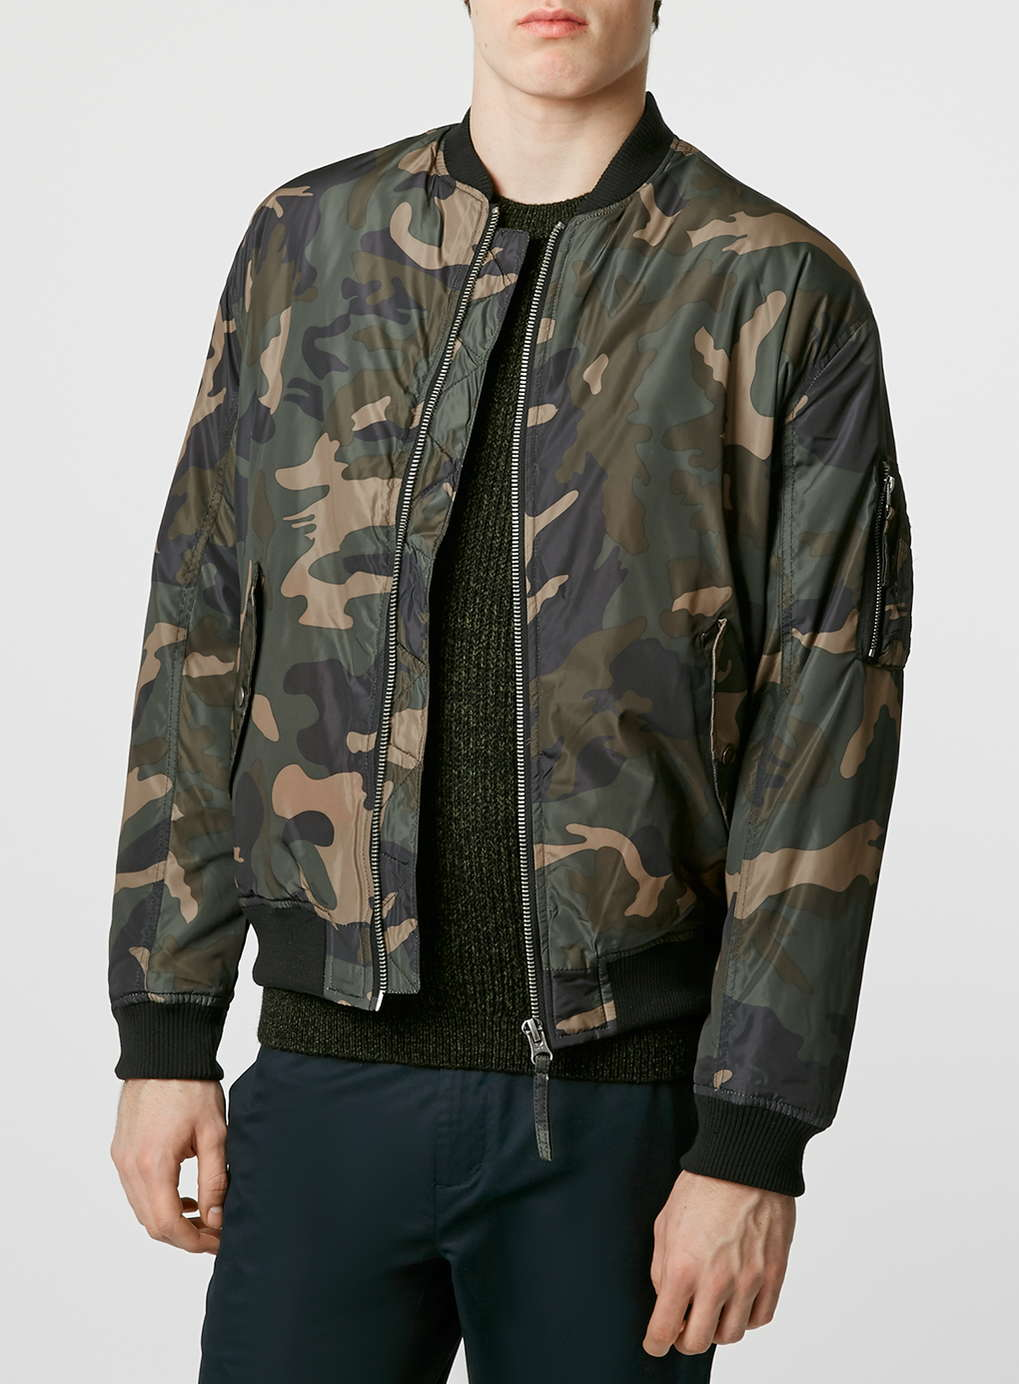 1d8981dc5e9bb Our stylists will find you something similar if you sign up for Thread.  Thread is an online personal styling service for men, ...